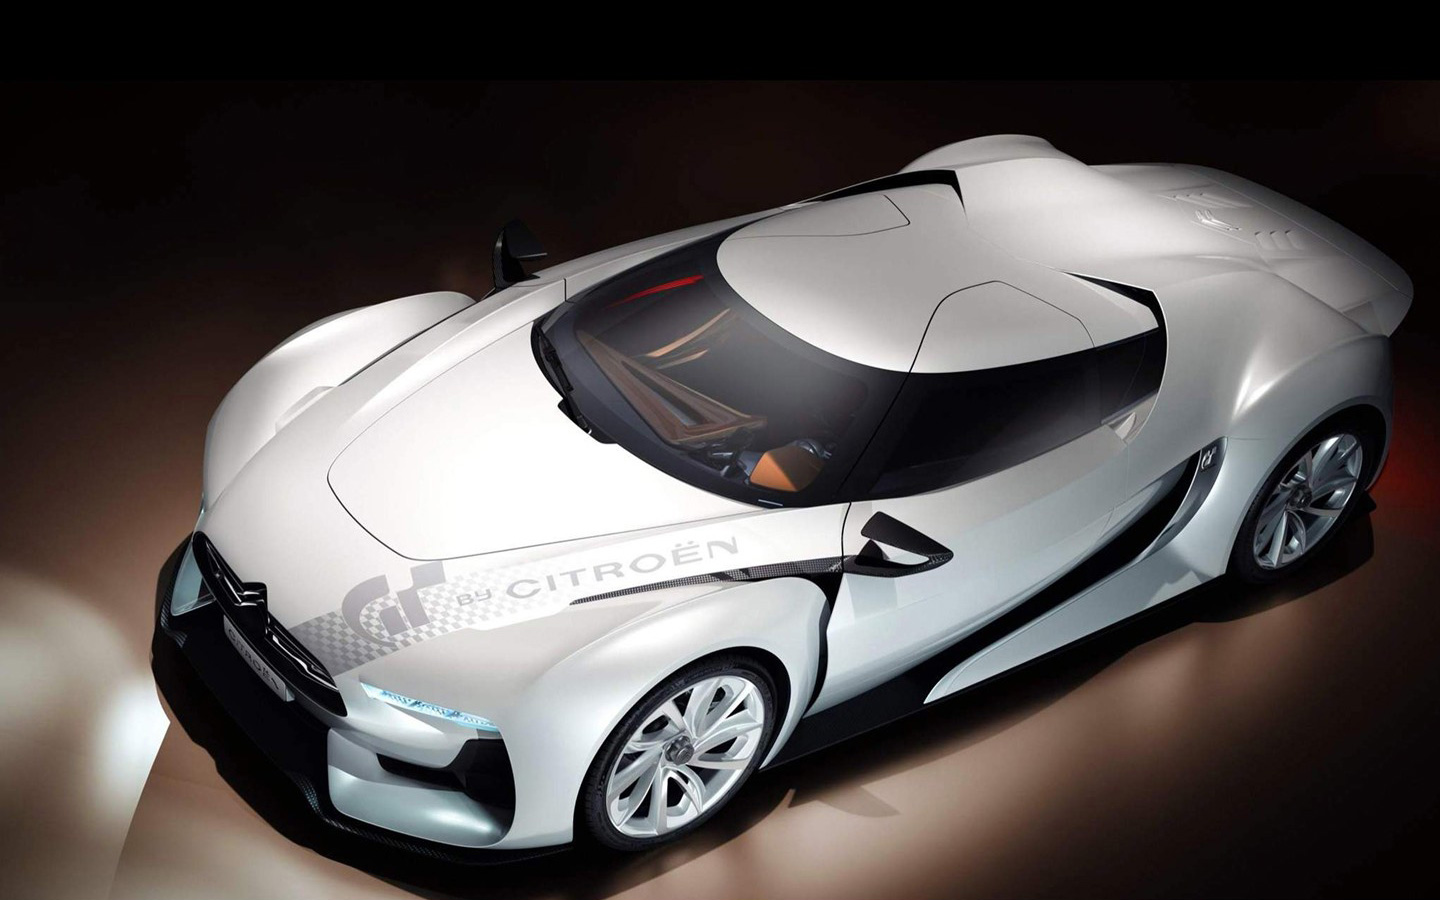 Citroen Supercar Concept 2 475.02 Kb